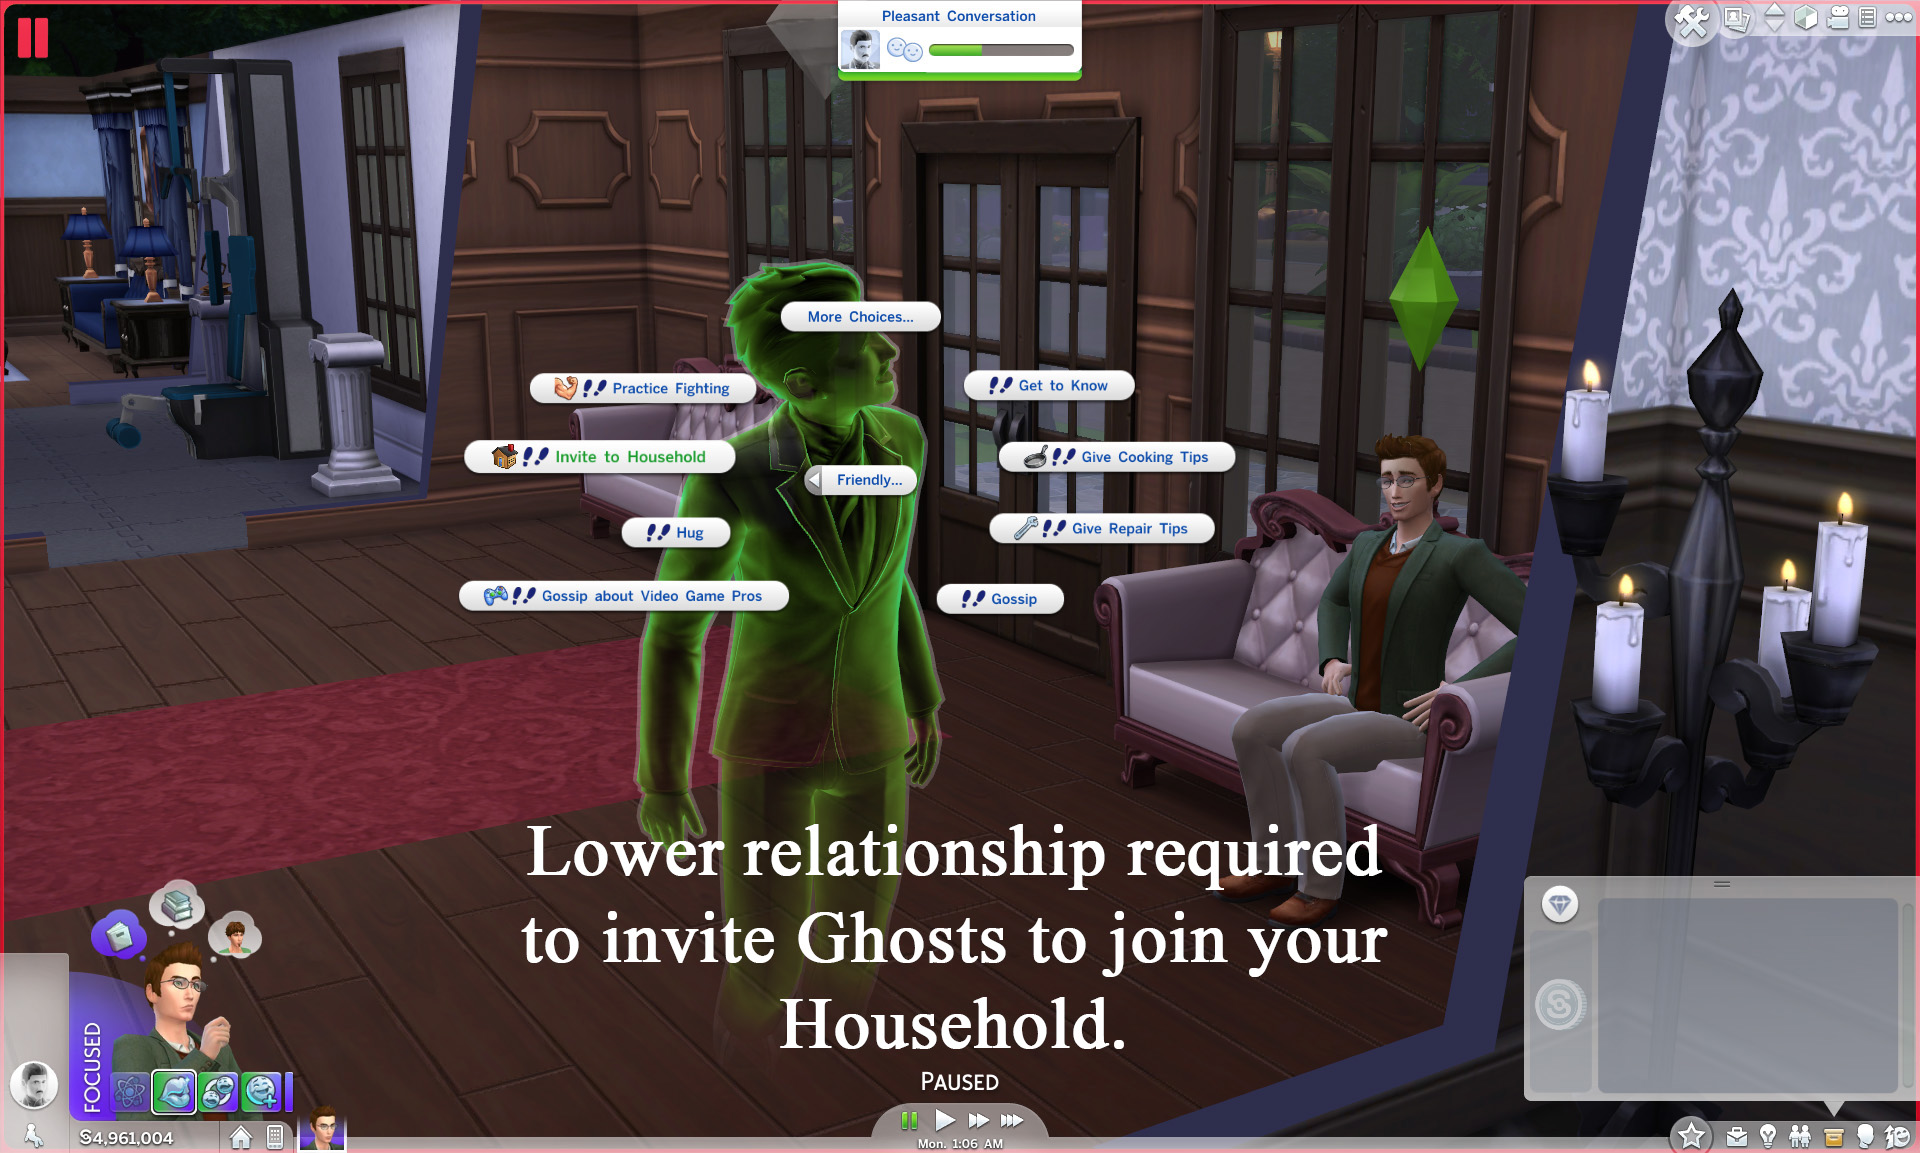 sims 3 dating a ghost Sims 4 ghosts was one of the major 2014 updates to sims 4 as you know, ghosts have been haunting the sims for a while now, tapping their spooky fingers on your shoulder when you're in the toilet, haunting your garden, lurking around corridors.